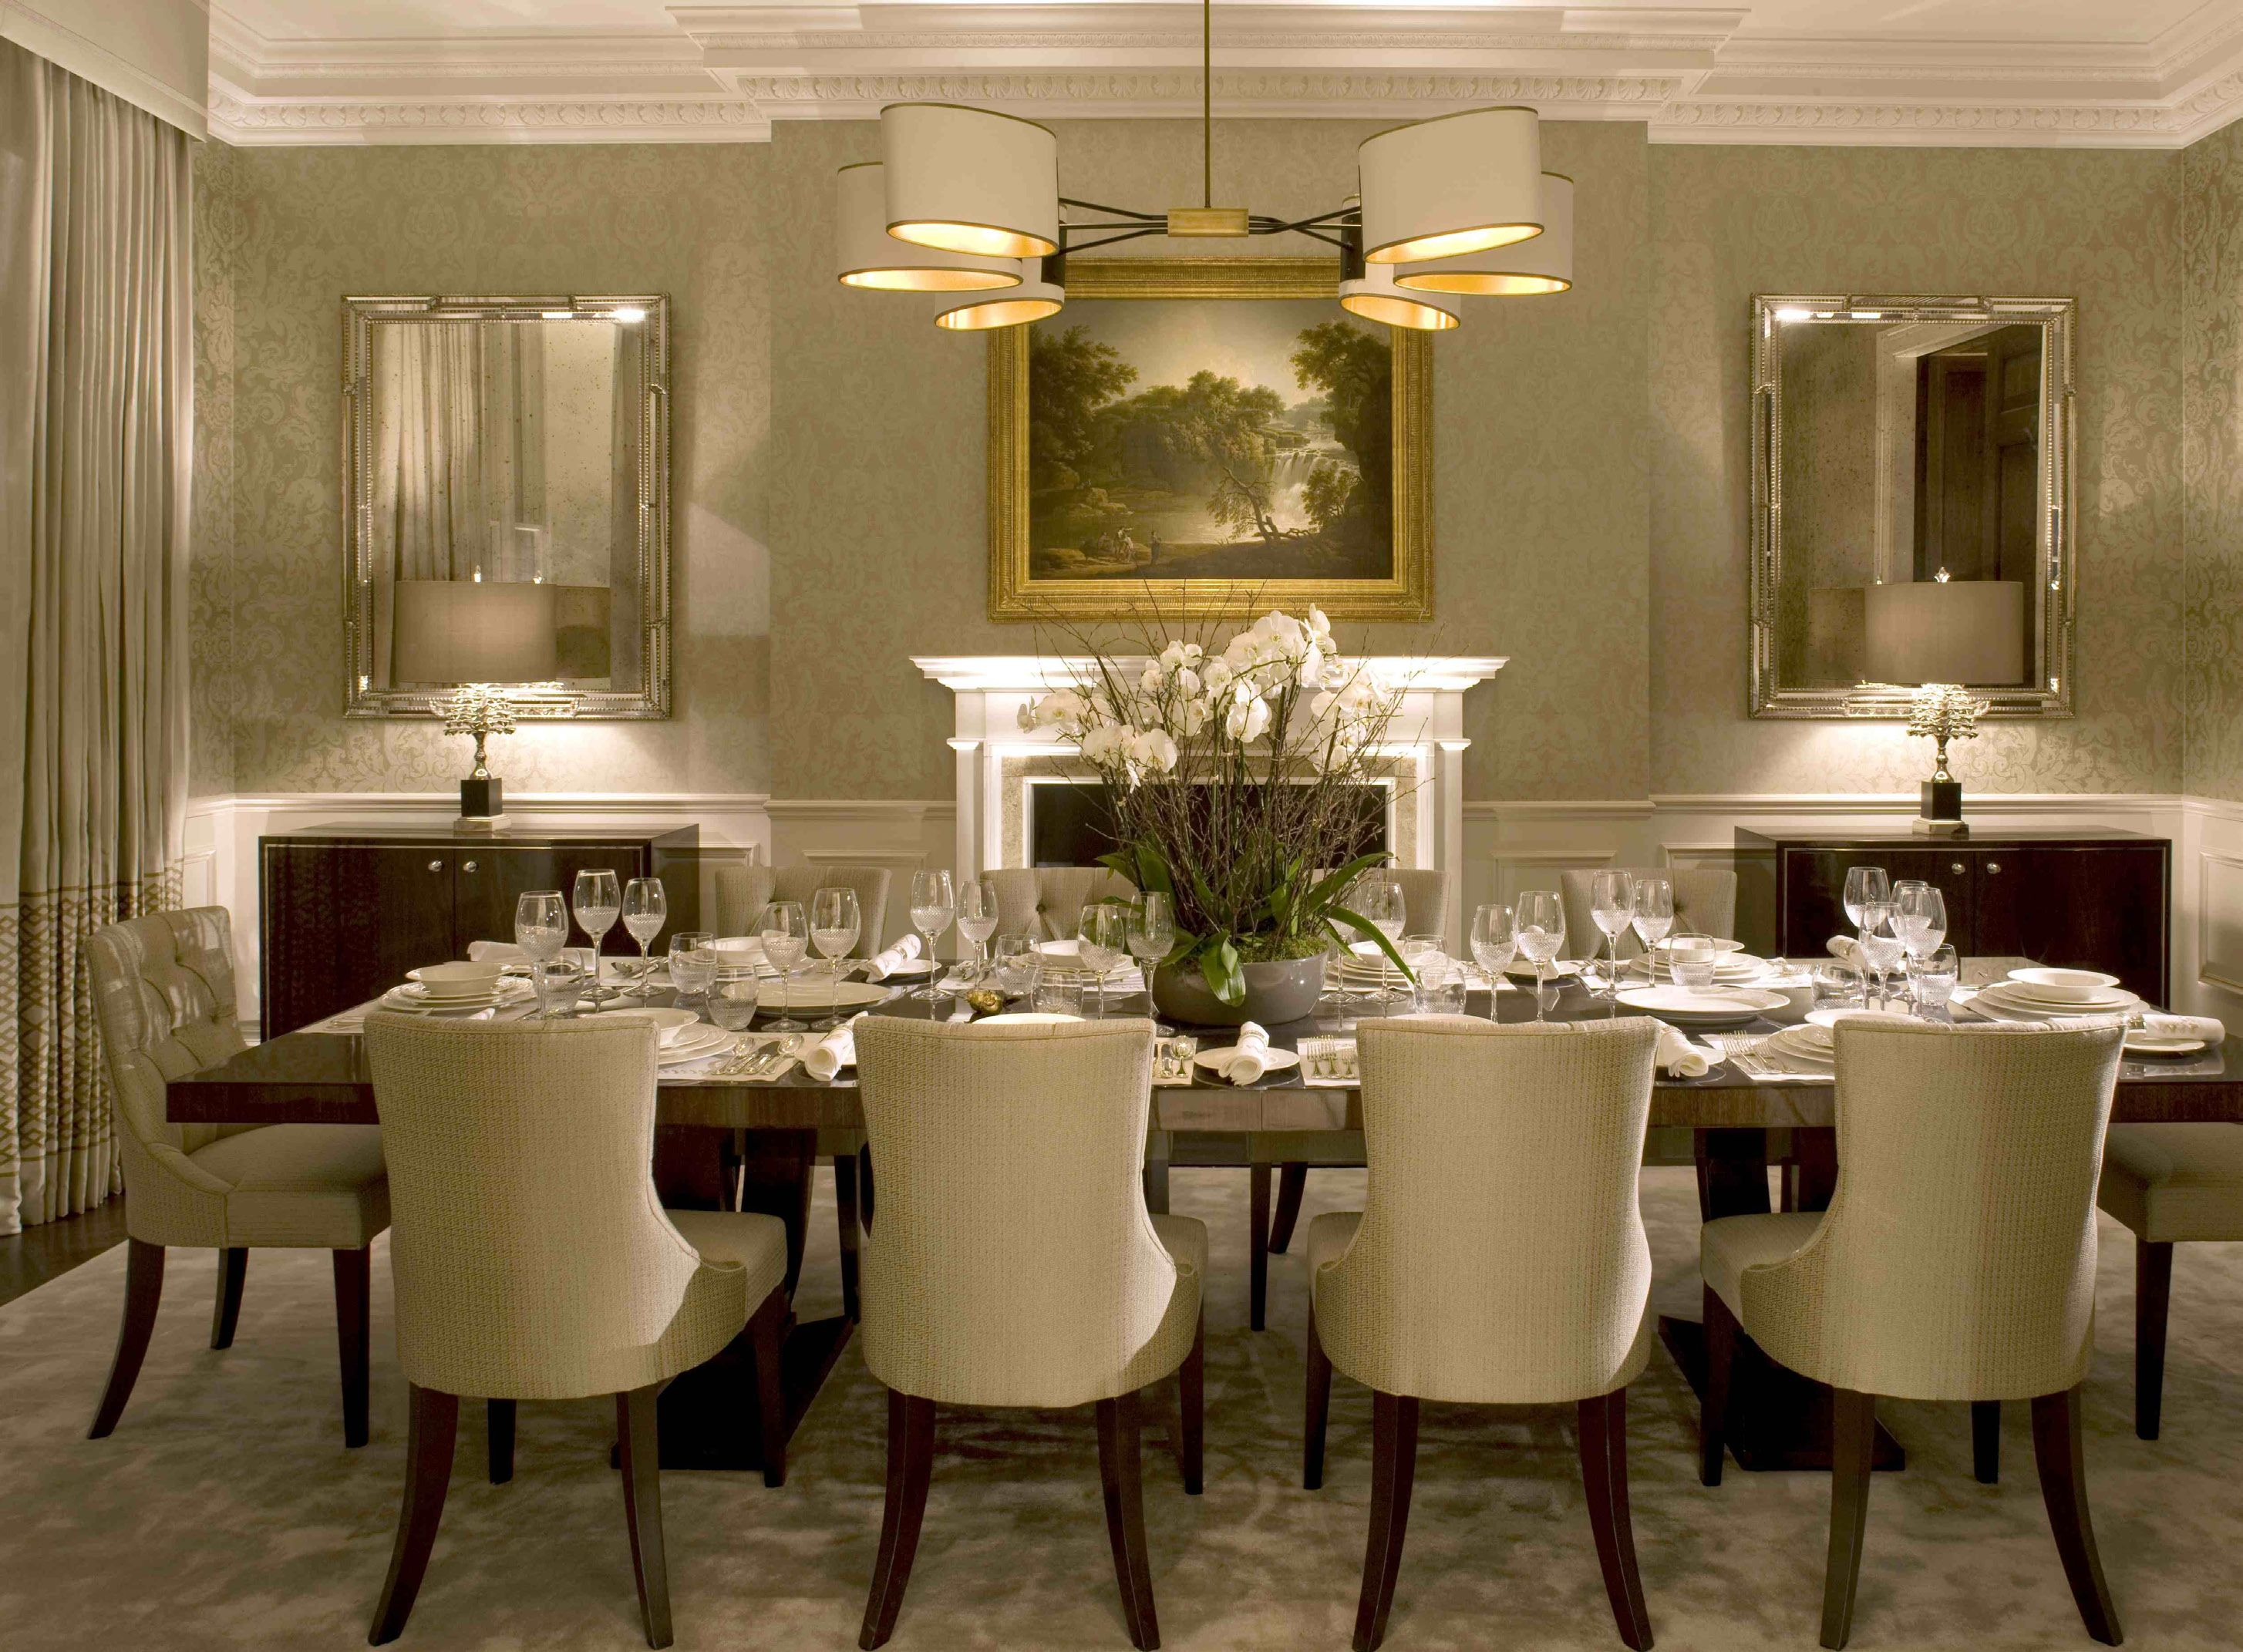 Luxury Dining Room Beautiful Lighting Design In Beige Tones